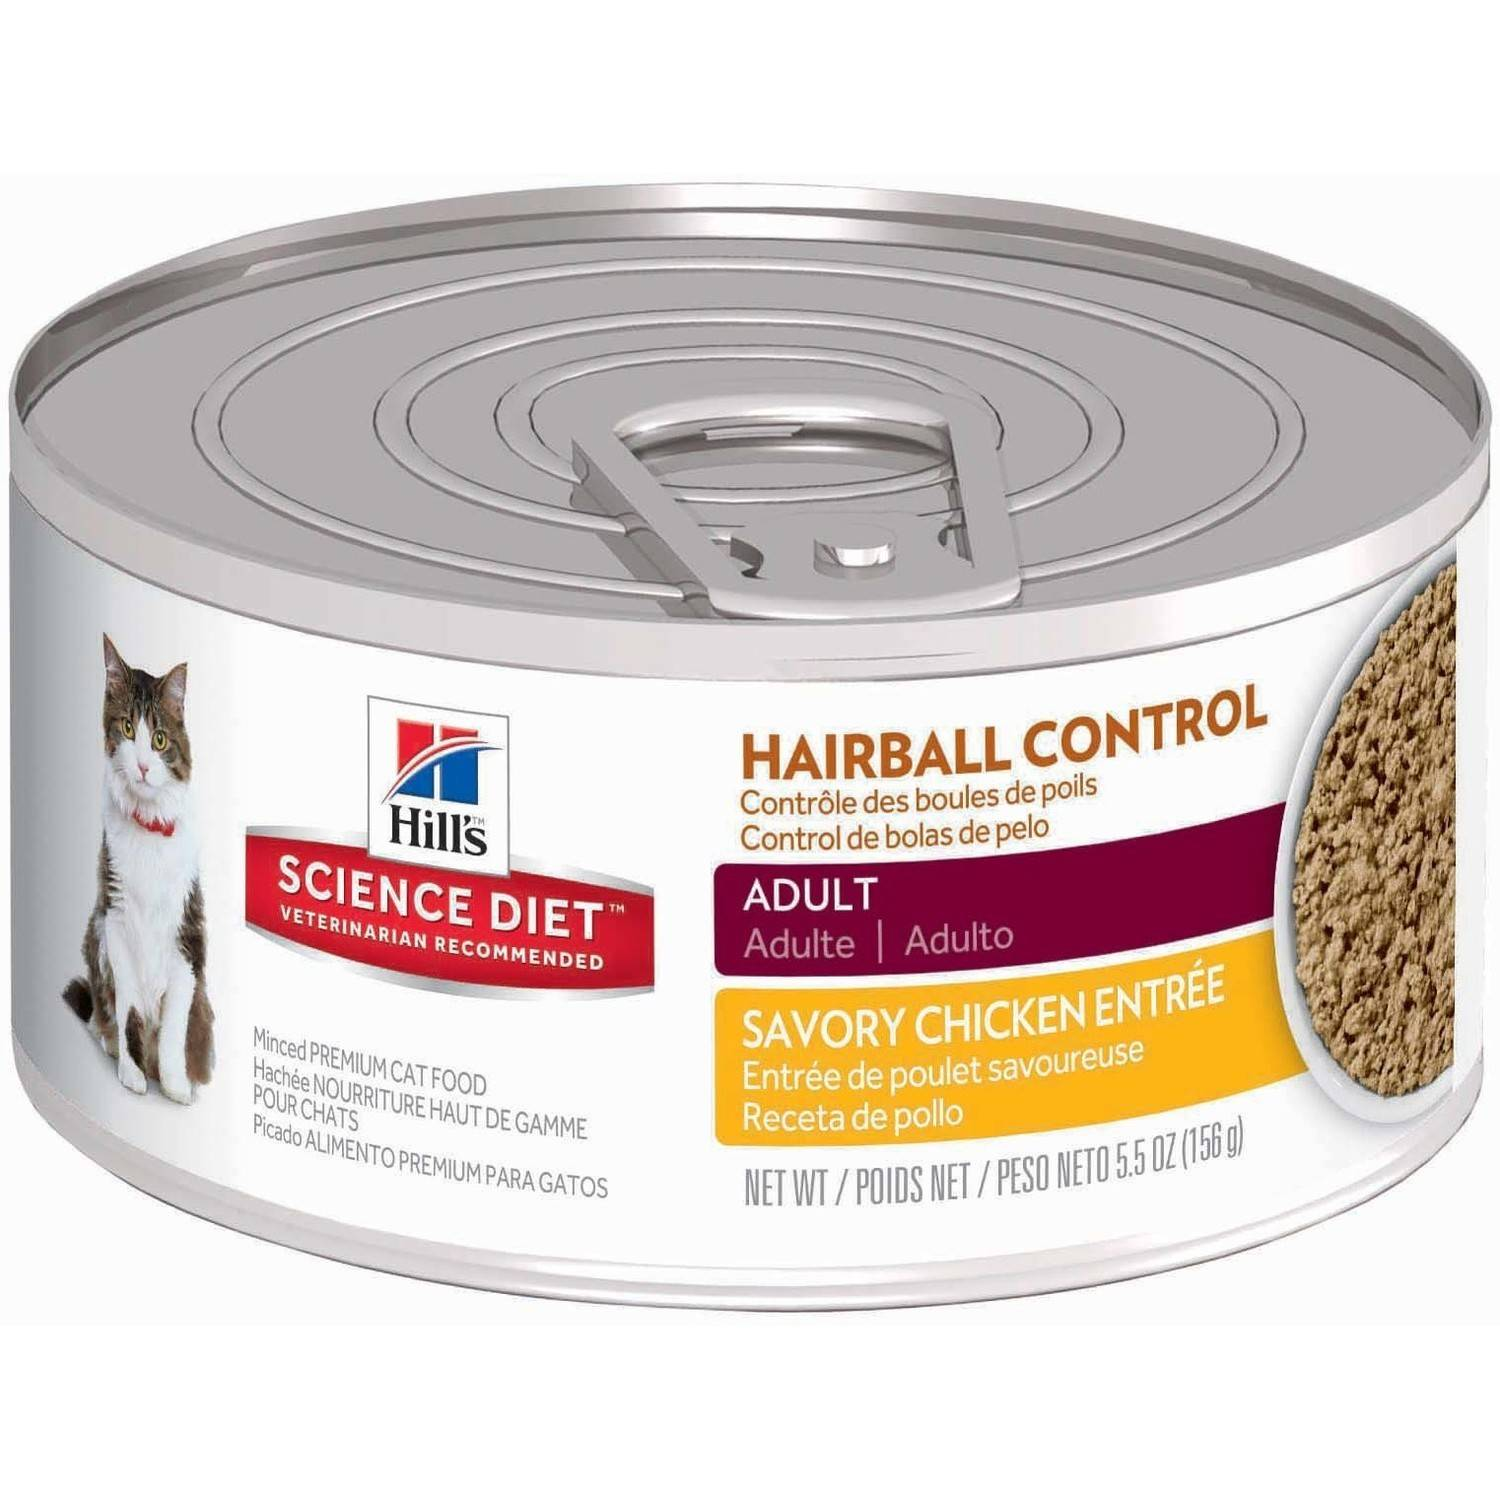 Hill's Science Diet (Get $5 back for every $20 spent) Adult Hairball Control Savory Chicken Entrée Canned Cat Food, 5.5 oz, 24-pack